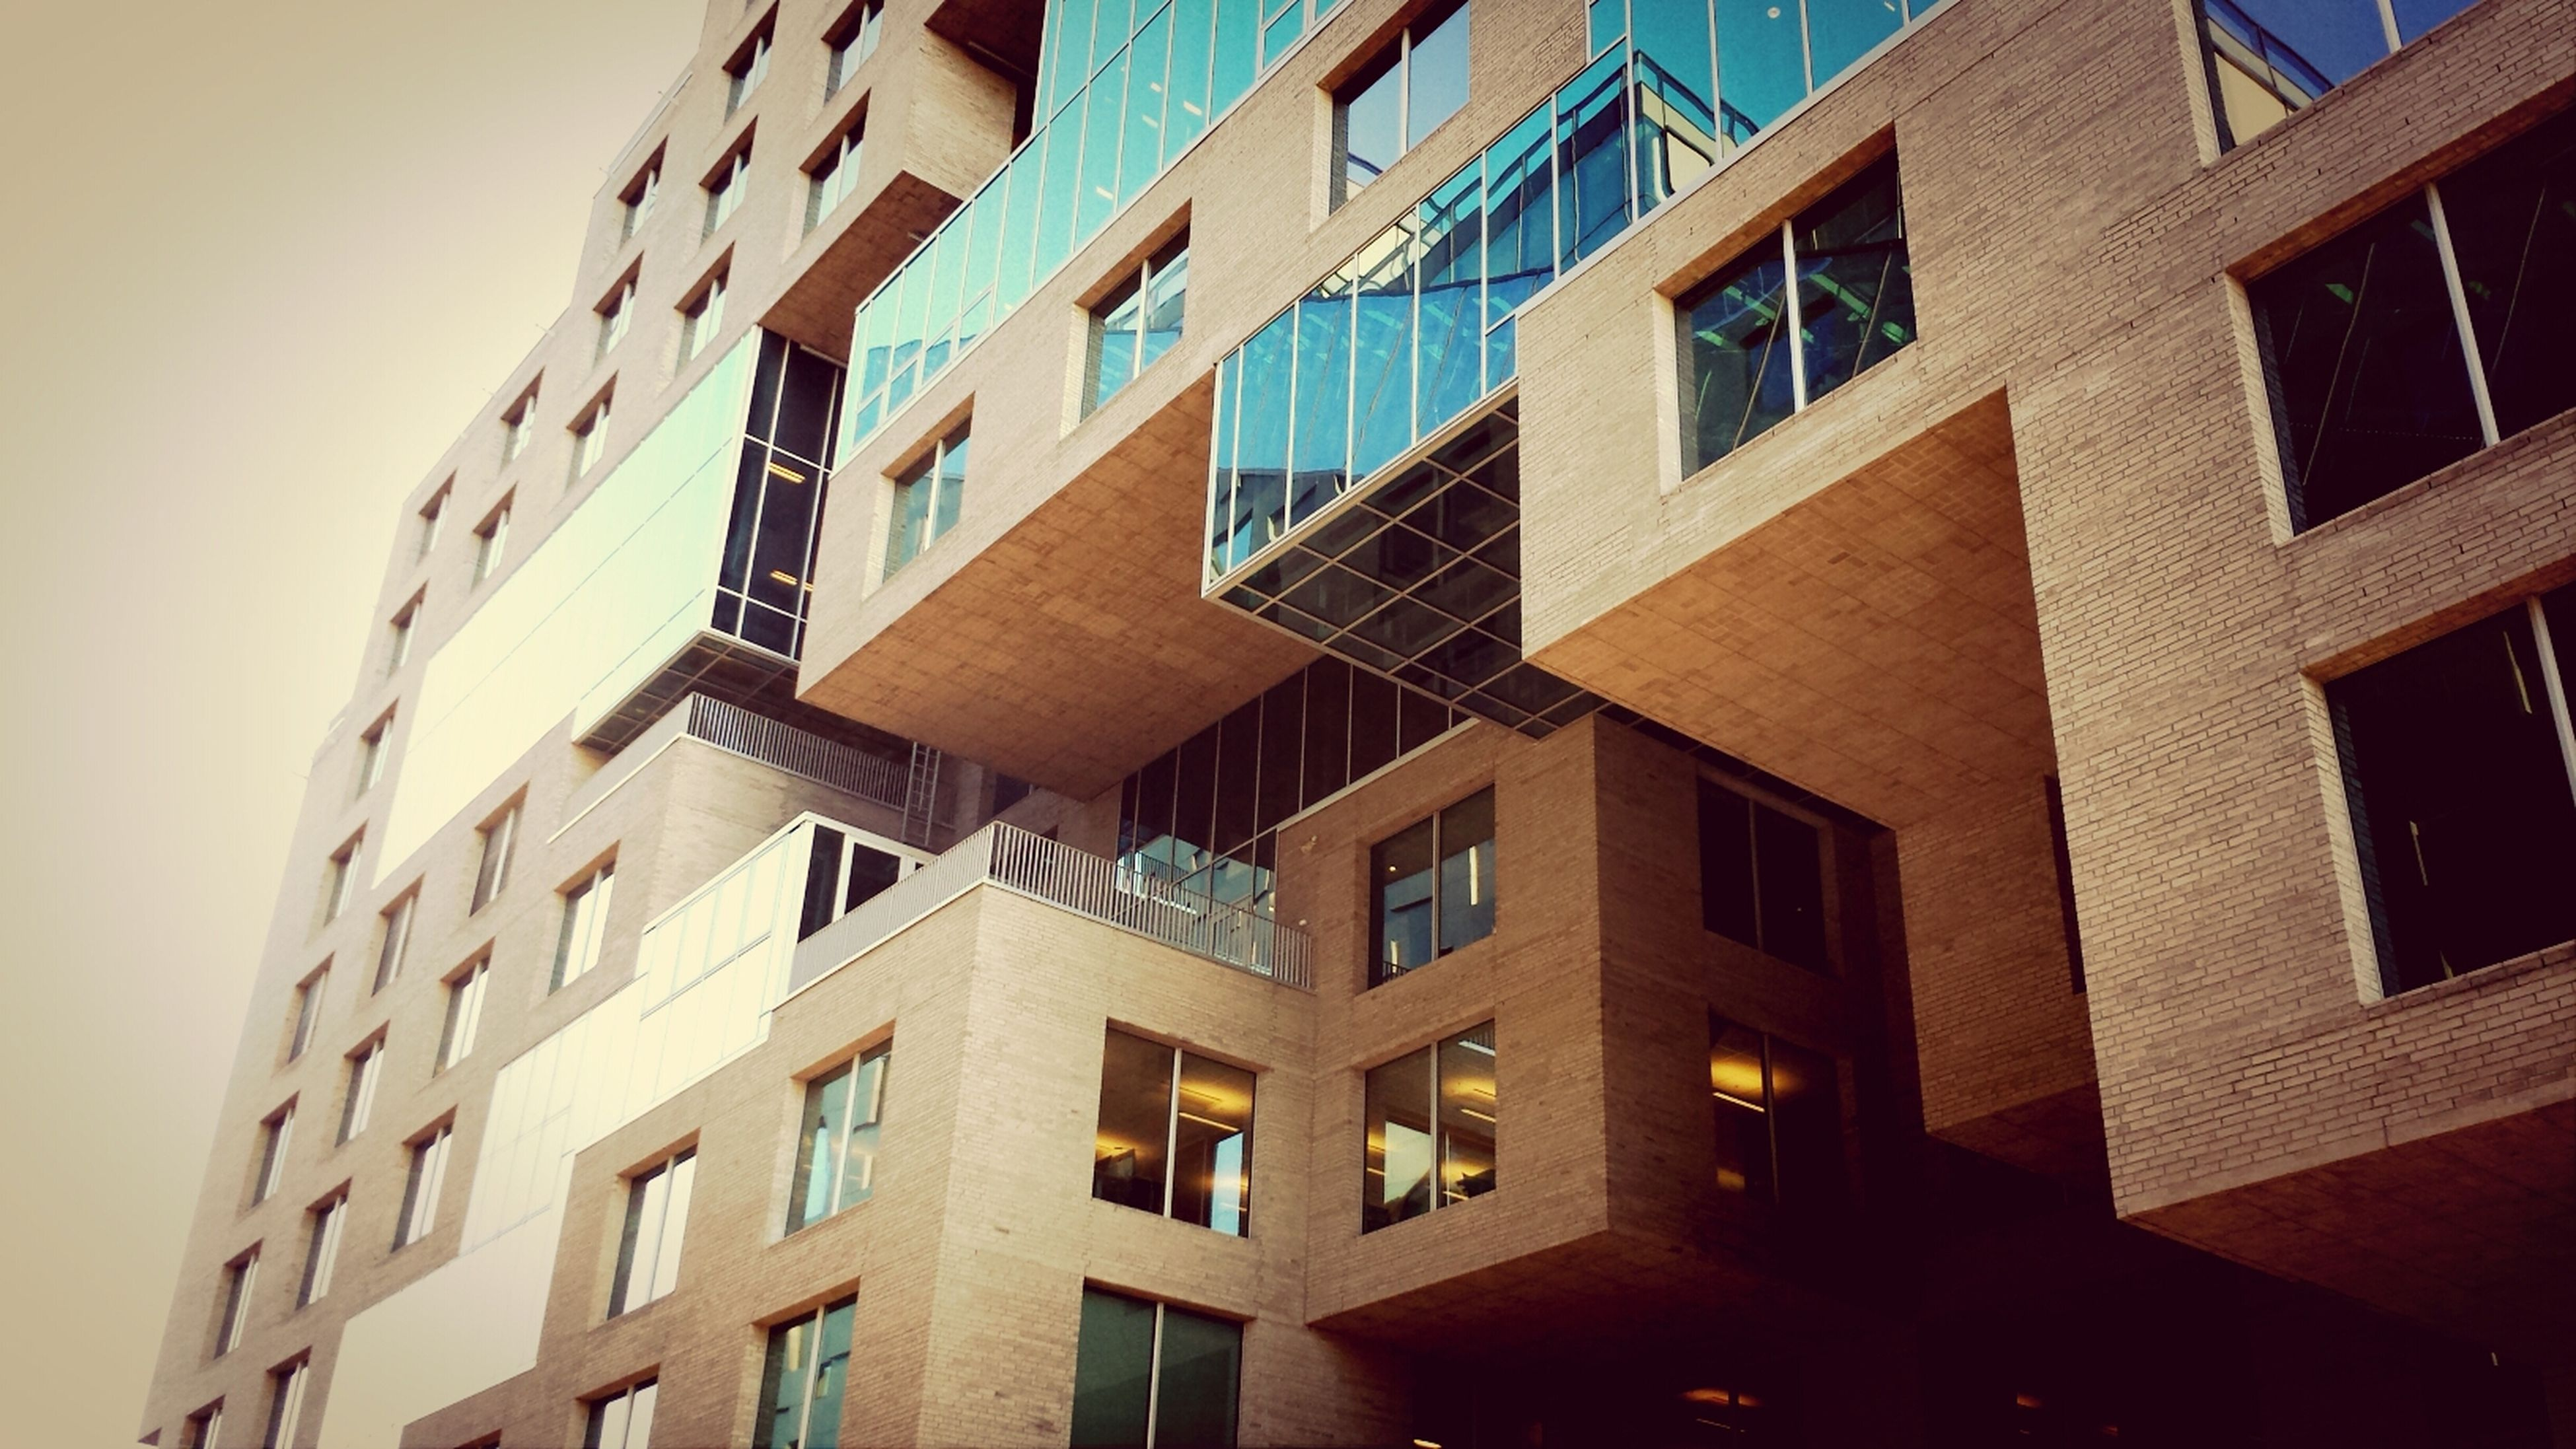 architecture, building exterior, built structure, low angle view, window, building, city, residential building, residential structure, apartment, modern, office building, balcony, repetition, day, clear sky, in a row, no people, outdoors, city life